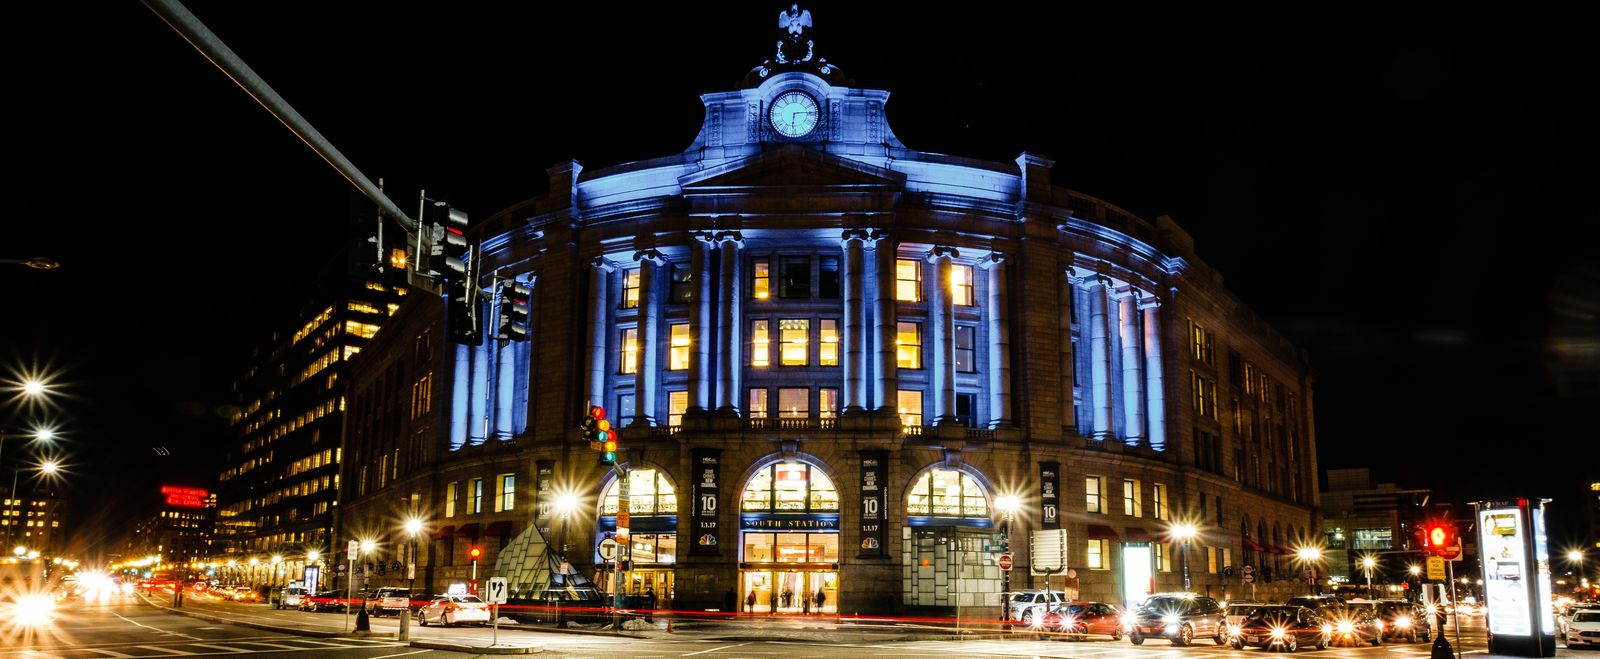 Boston's South Station is lit up by blue lights at night.